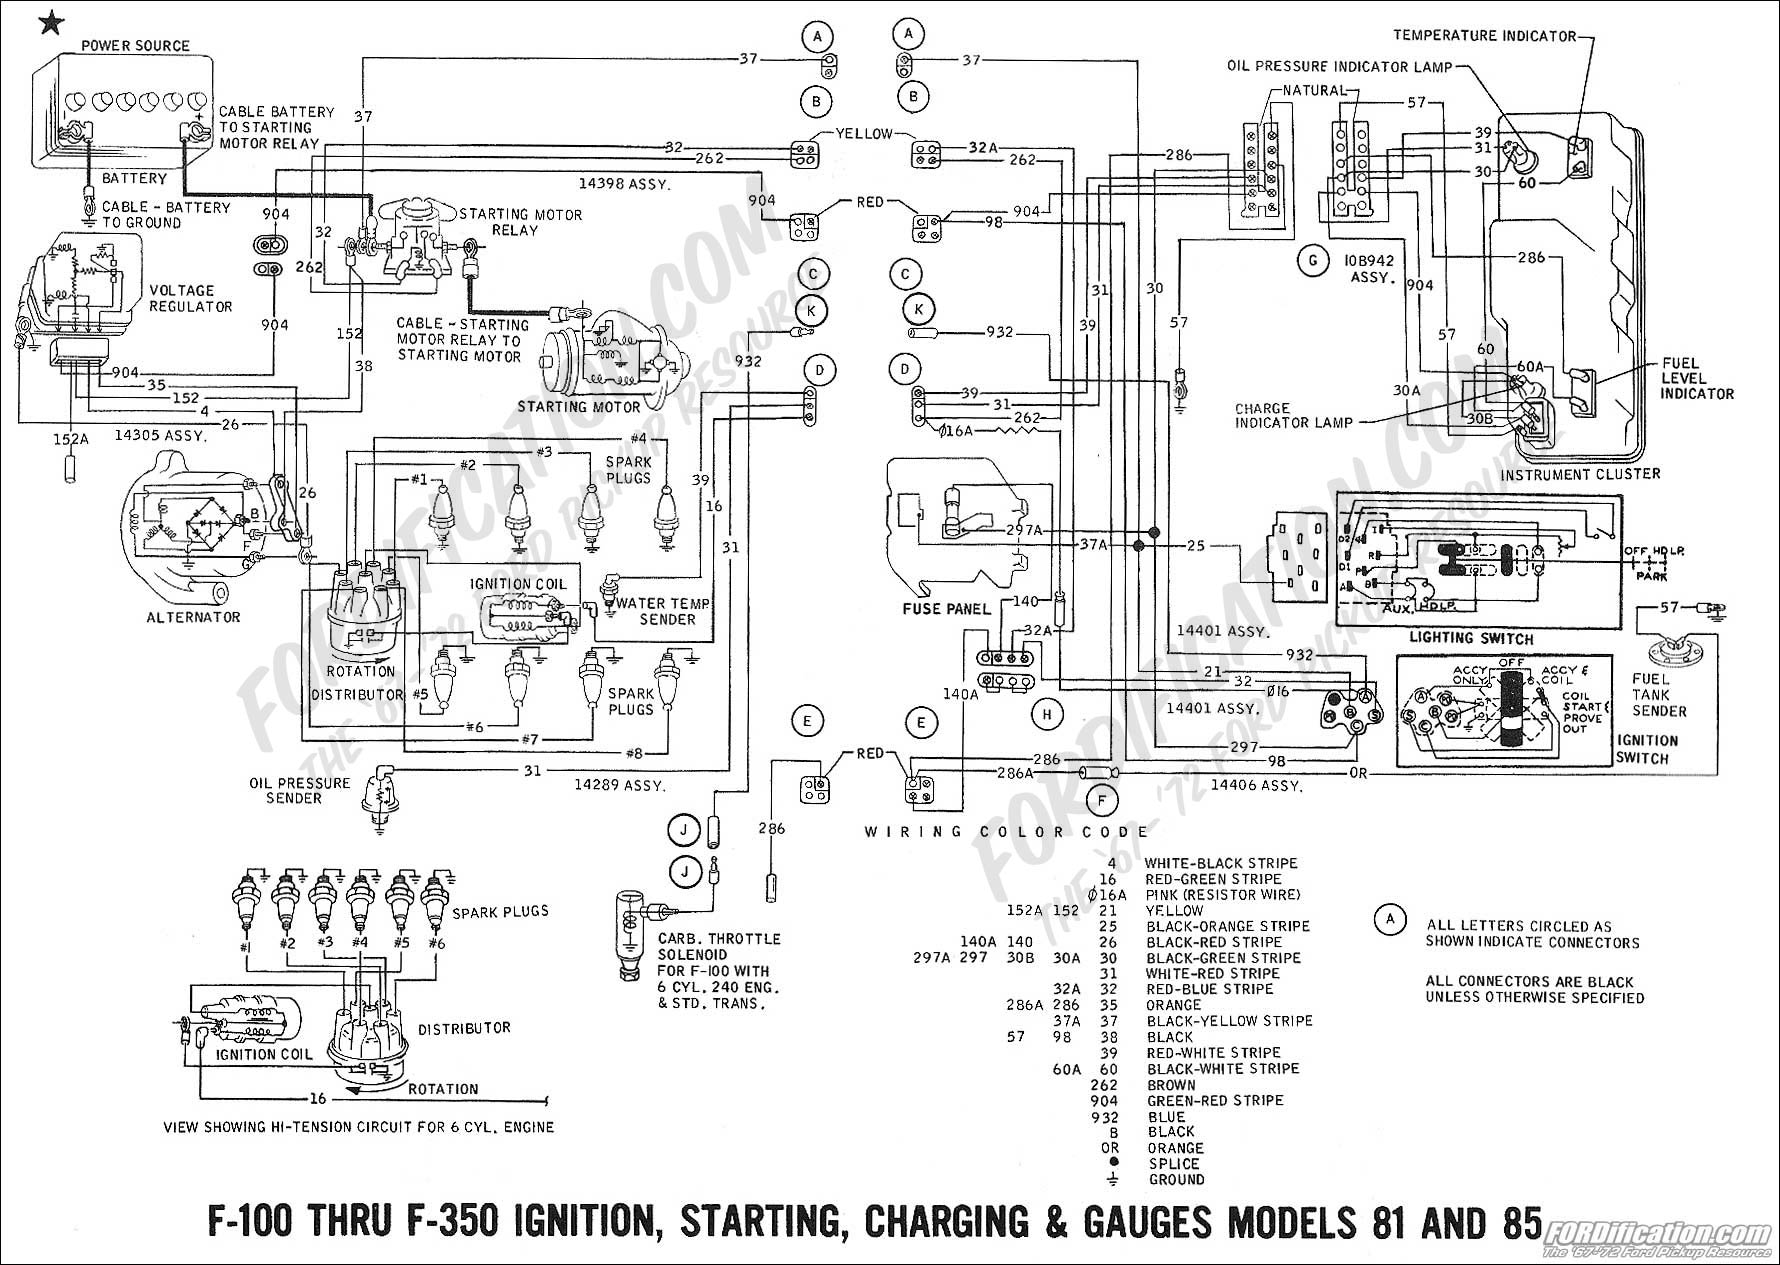 1969 ford galaxie wiring diagram z3 wiring library diagram1969 ford f250 wiring diagram z3 wiring library diagram 1968 ford torino 1969 ford galaxie wiring diagram